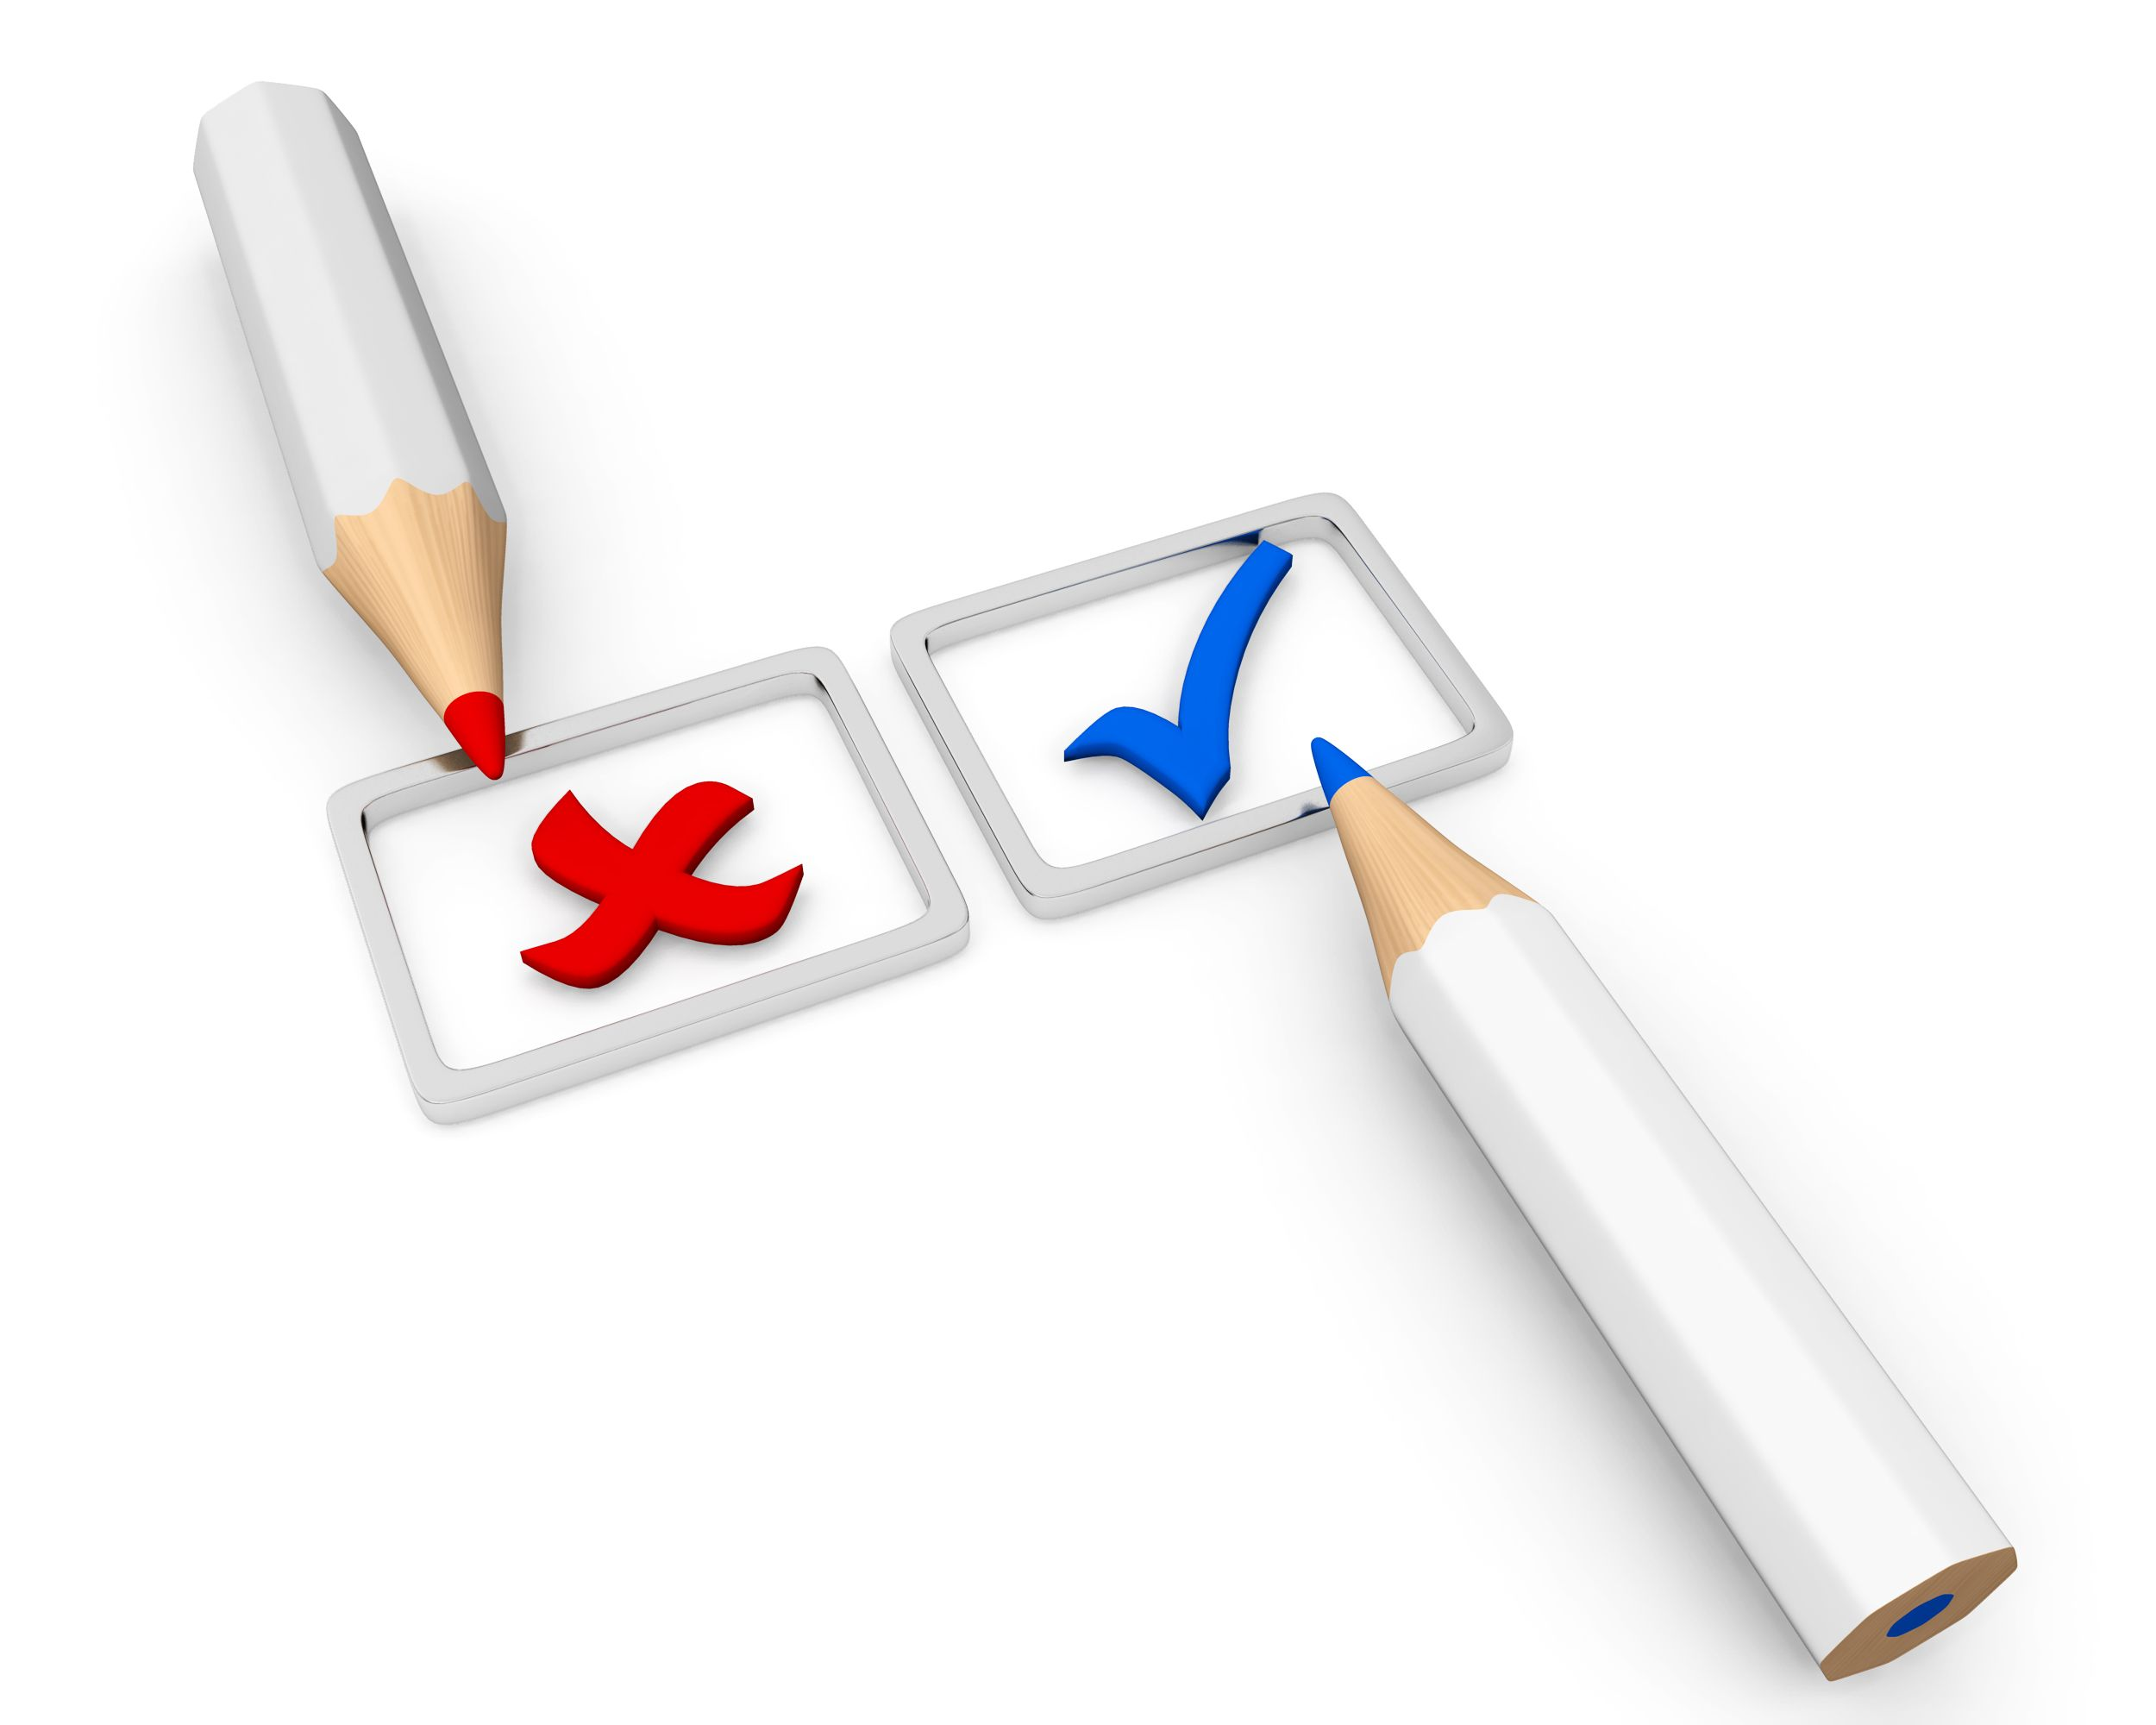 tickmark_and_cross_sign_with_two_white_pencils_on_white_background_stock_photo_Slide01